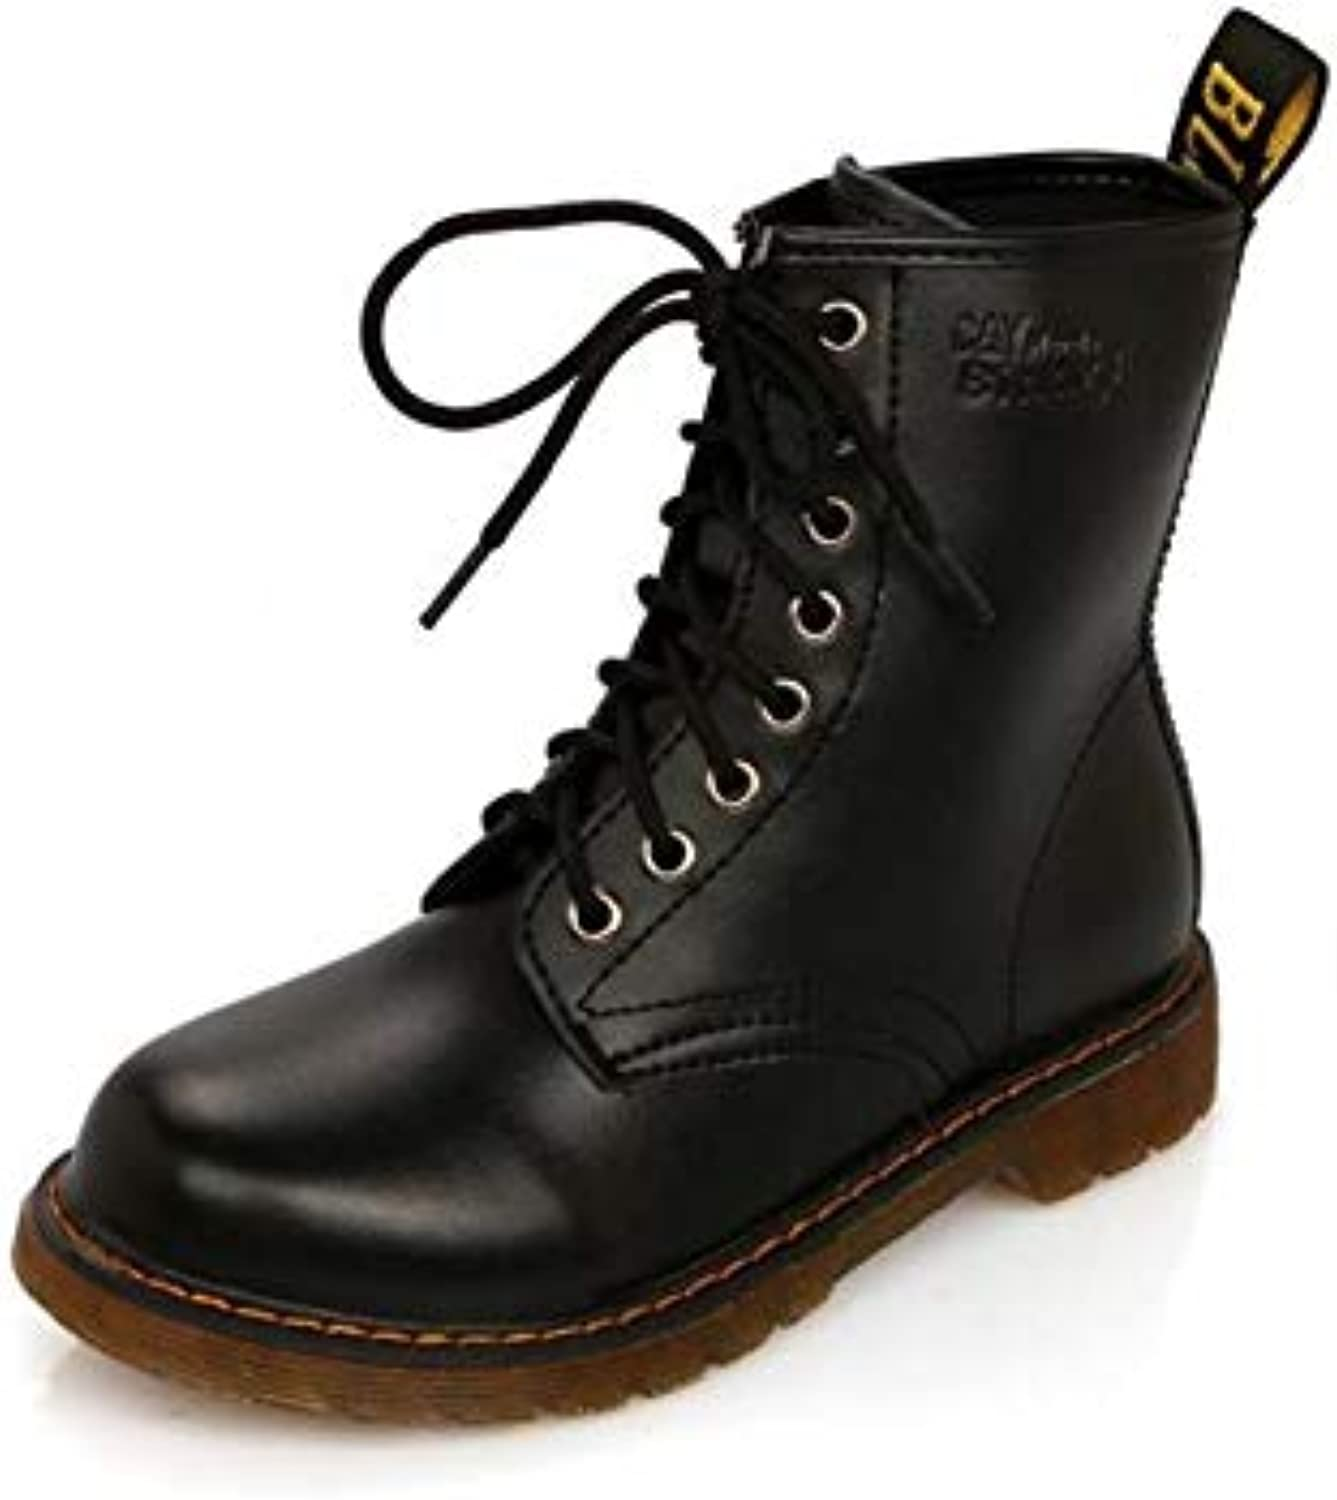 Meimeioo Women's Military Combat Boots Lace Up Riding Boots Martin Boots